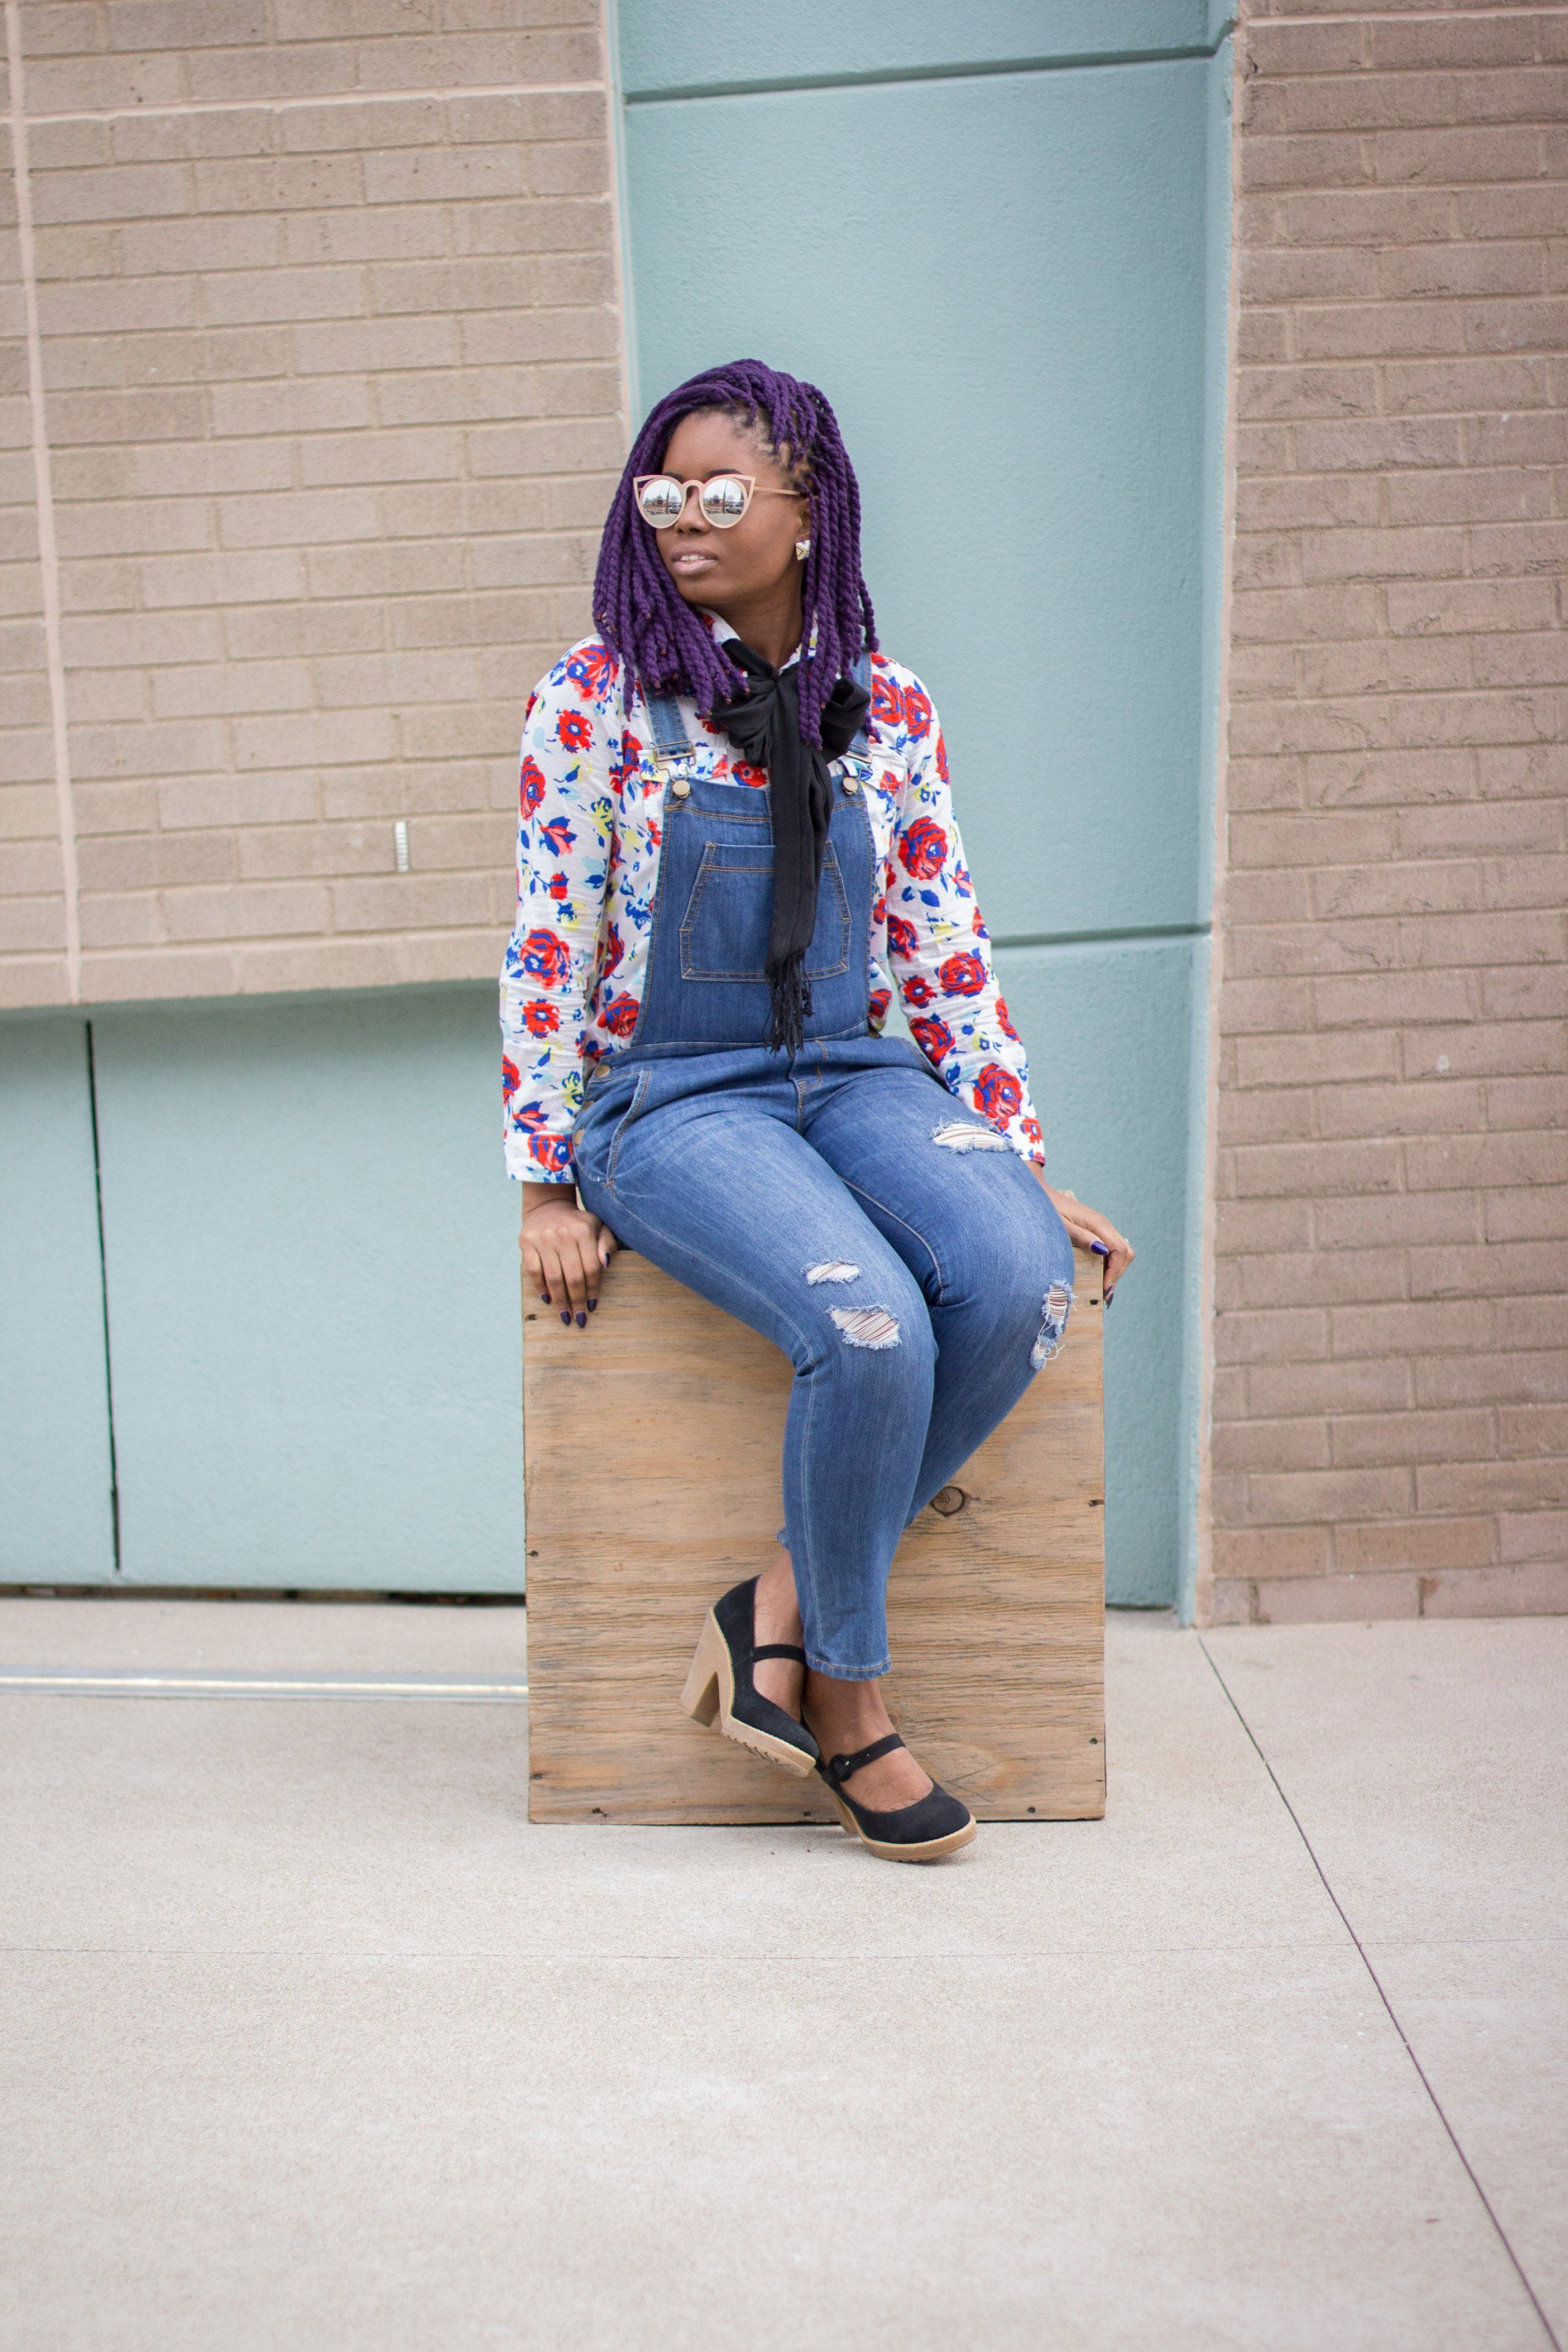 19b3334823 Bringing Back Overalls + 3 Simple Ways to Add A Little Fun To Your ...